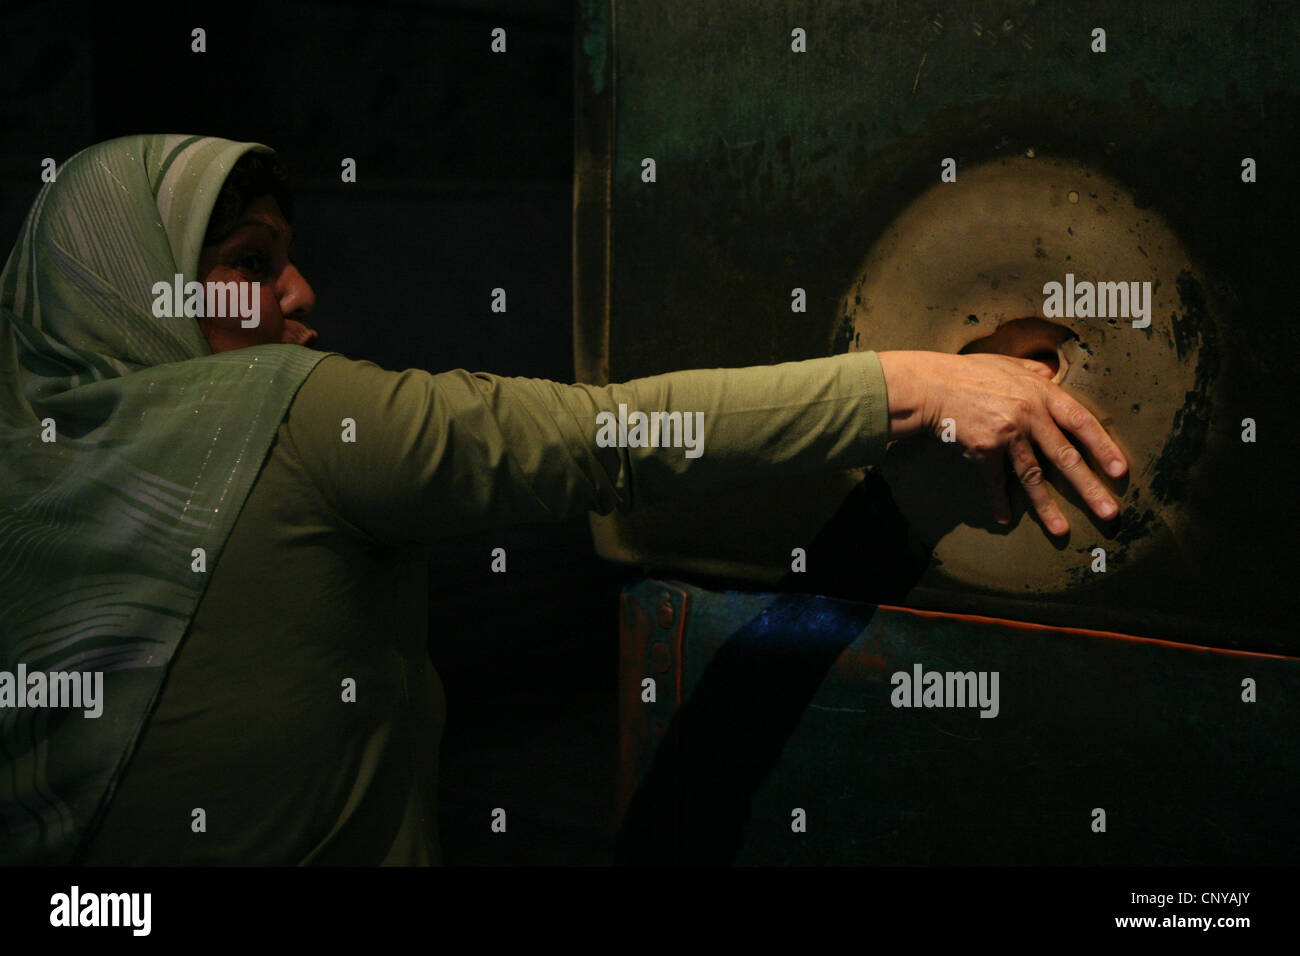 Turkish woman rotates her thumb in the hole in the Weeping Column in Hagia Sophia in Istanbul, Turkey. - Stock Image